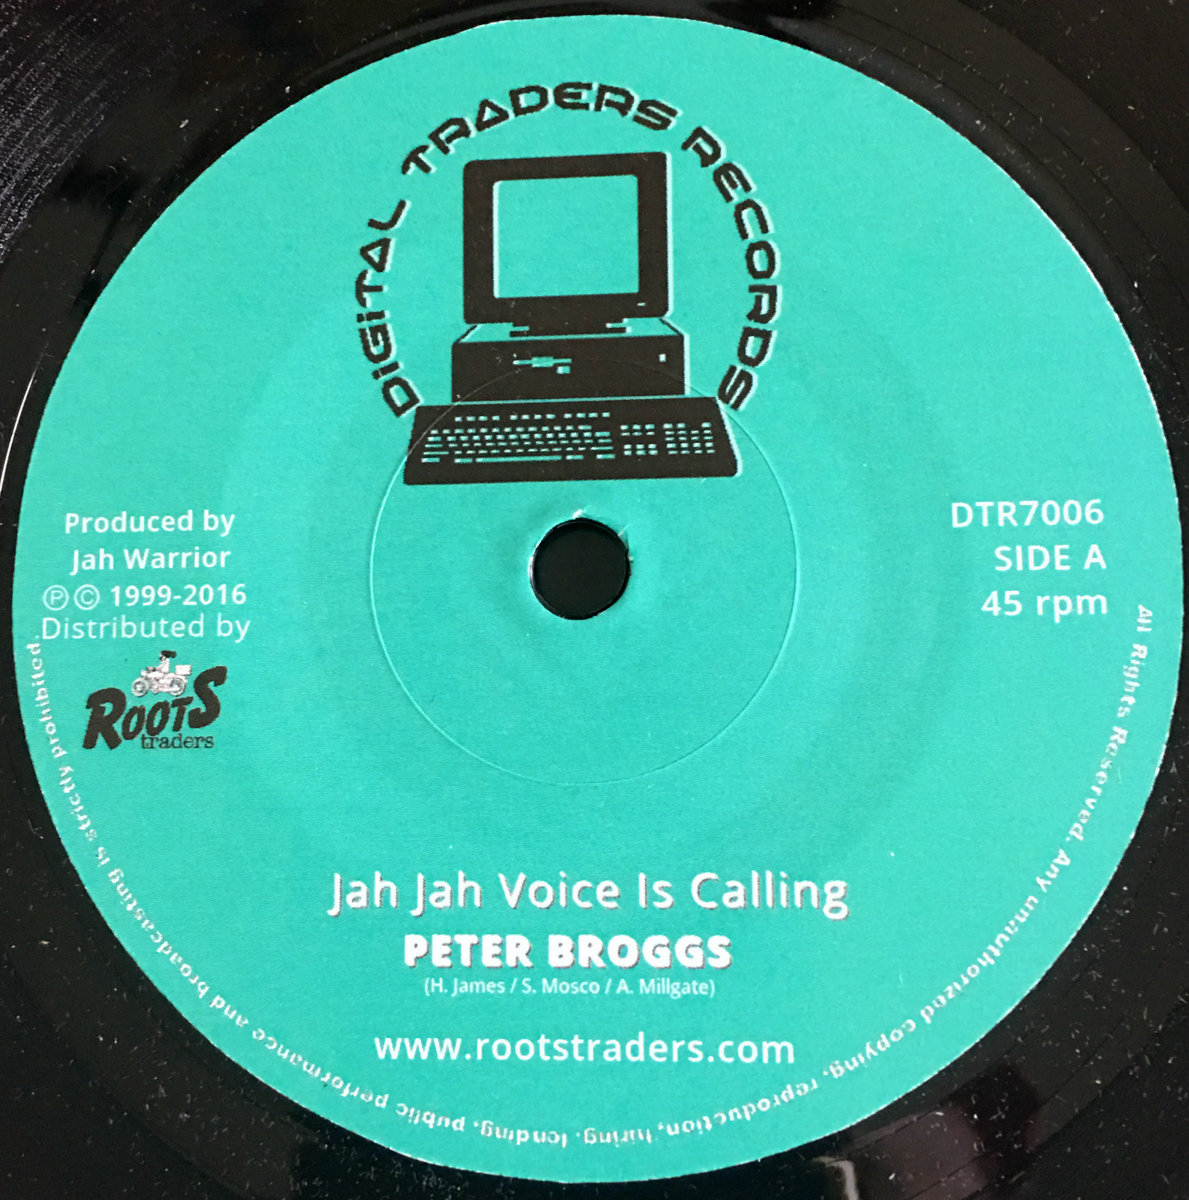 Jah calling dub lyrics